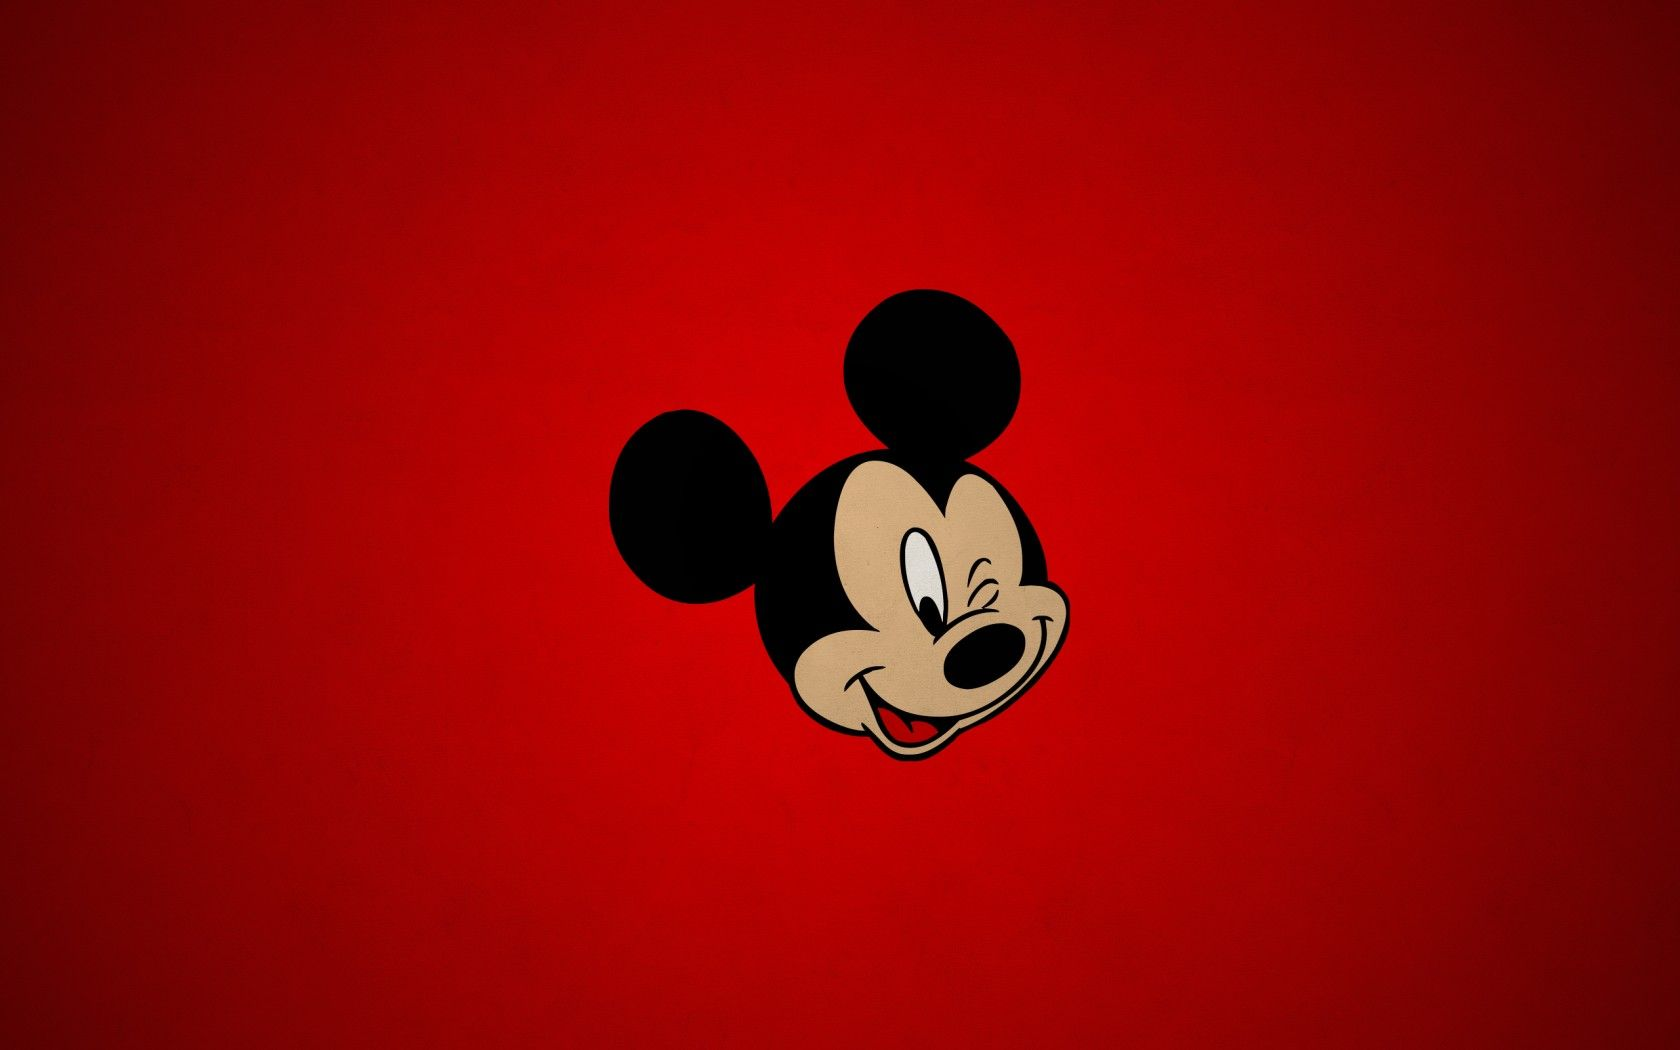 Sweet Cartoon Mickey Mouse Wallpaper Hd Red 644 Wallpaper Mickey Mouse Wallpaper Mickey Mouse Art Mickey Mouse Background